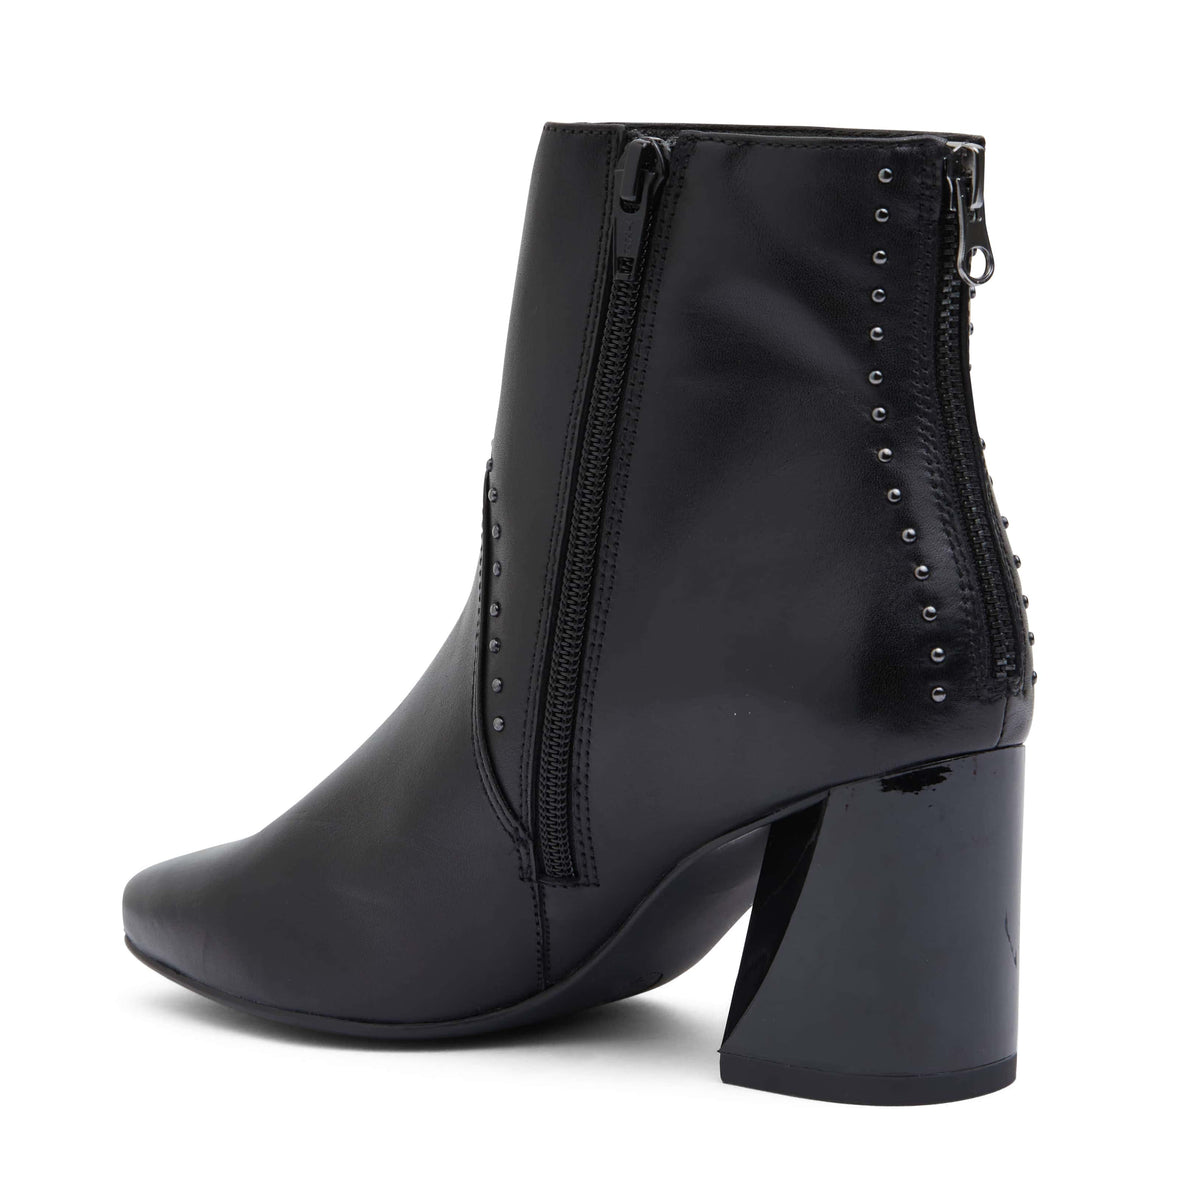 Grenada Boot in Black Leather